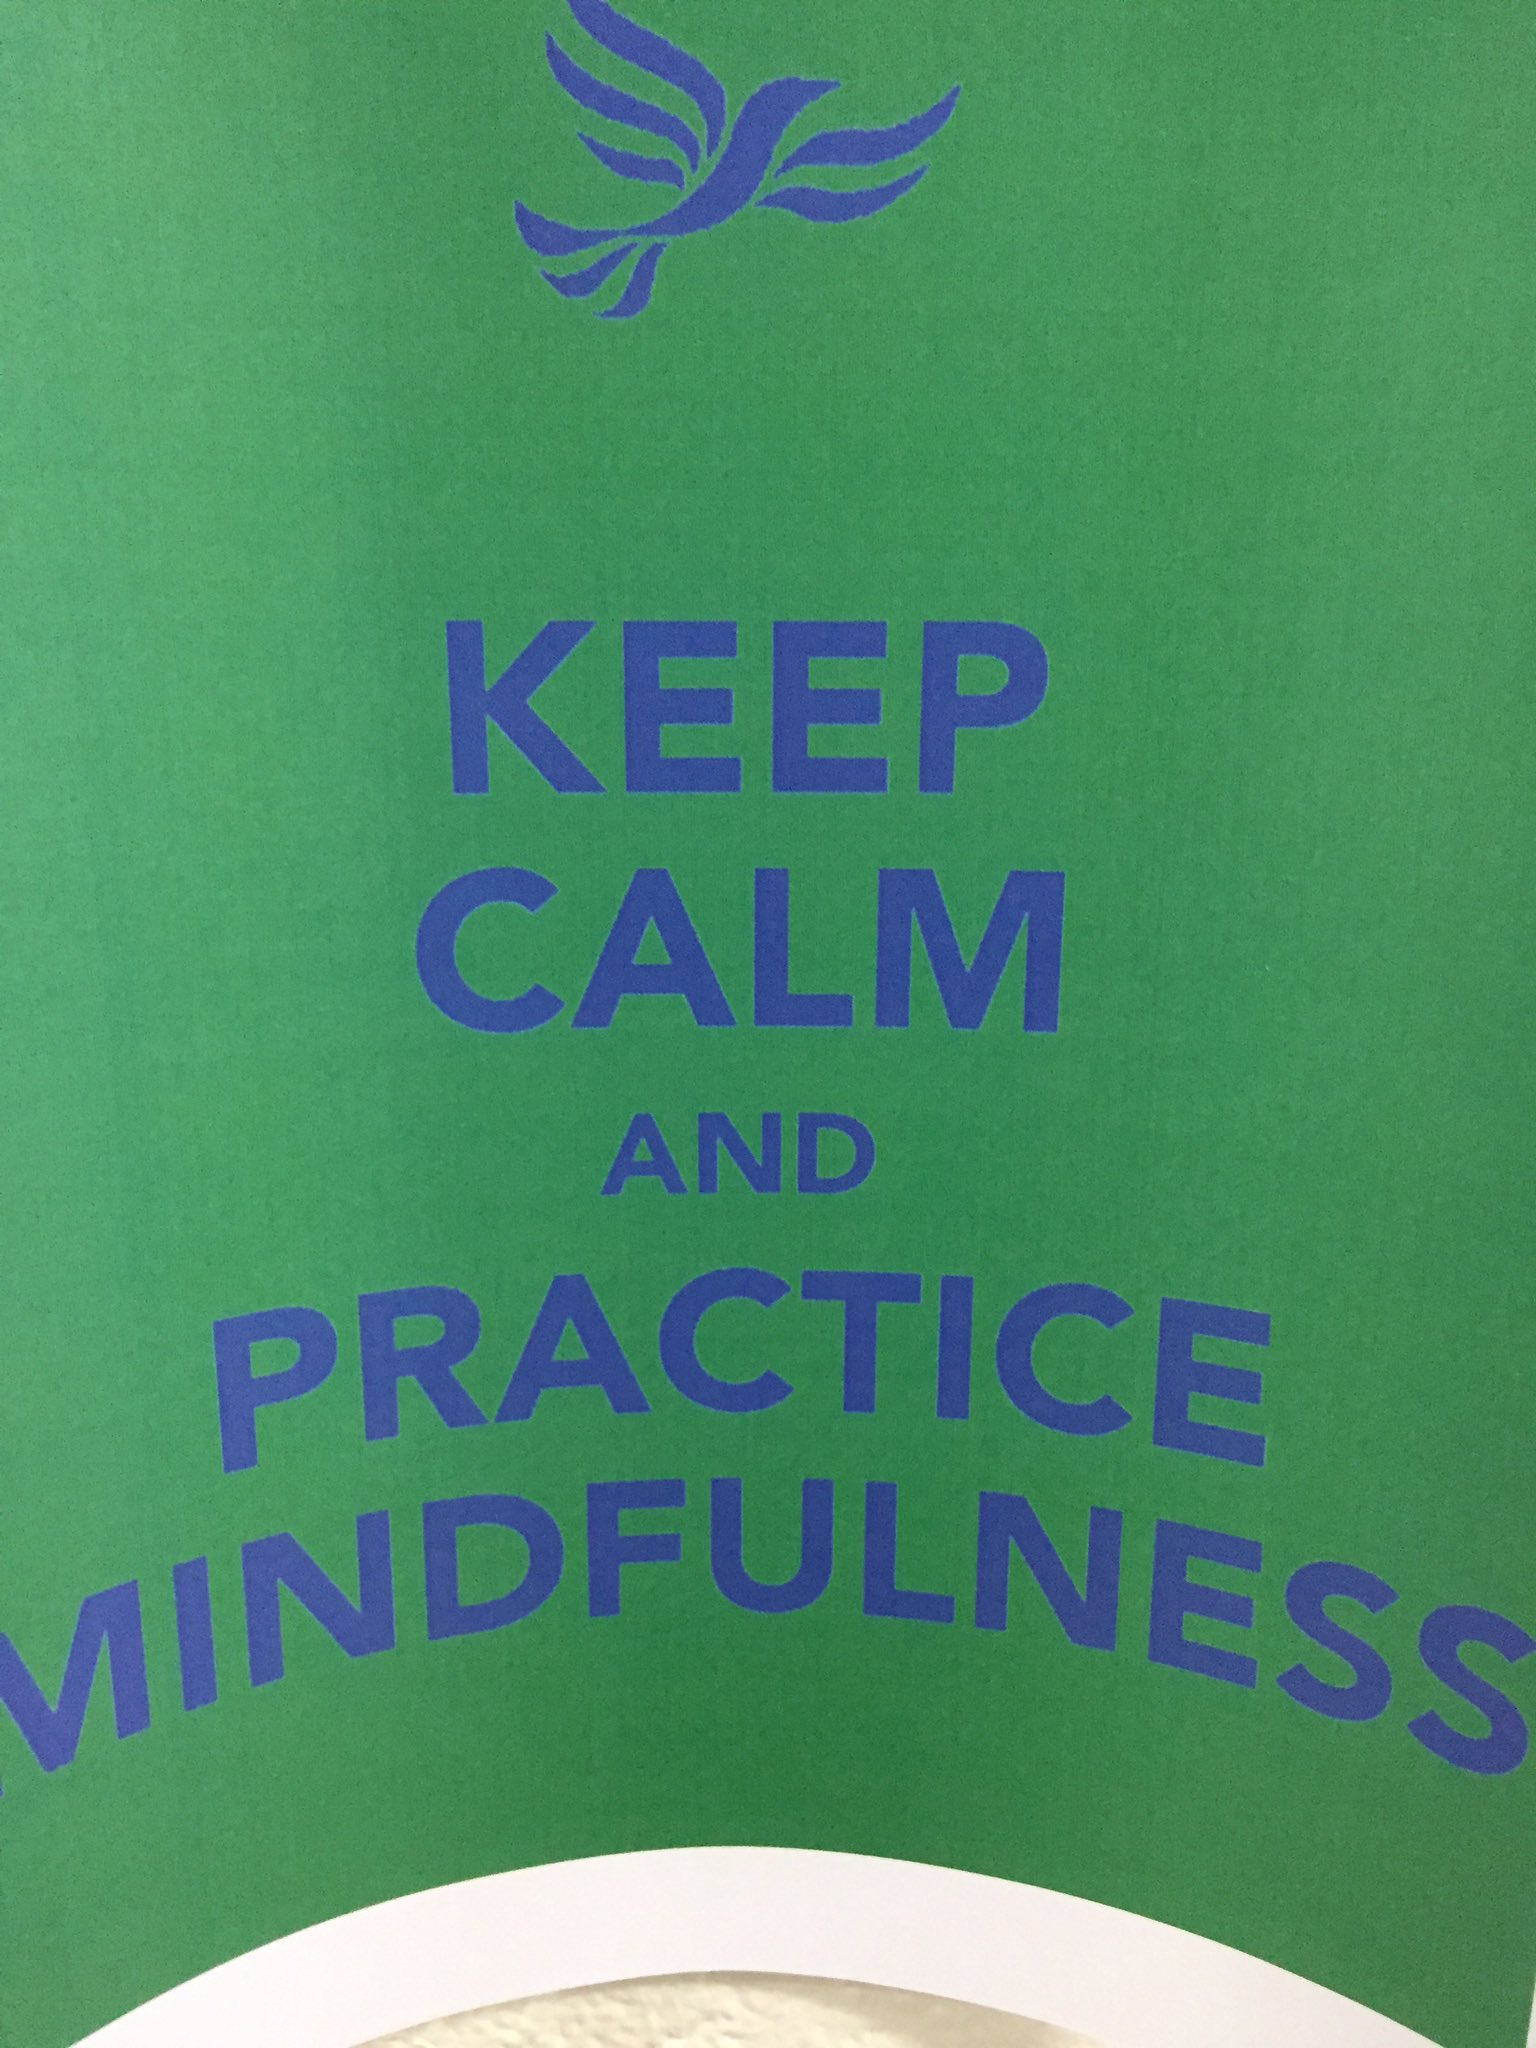 Practicing mindfulness in the Lower School - International Calm Day #myflinthill #calmday https://t.co/Hv8qSH5Nph